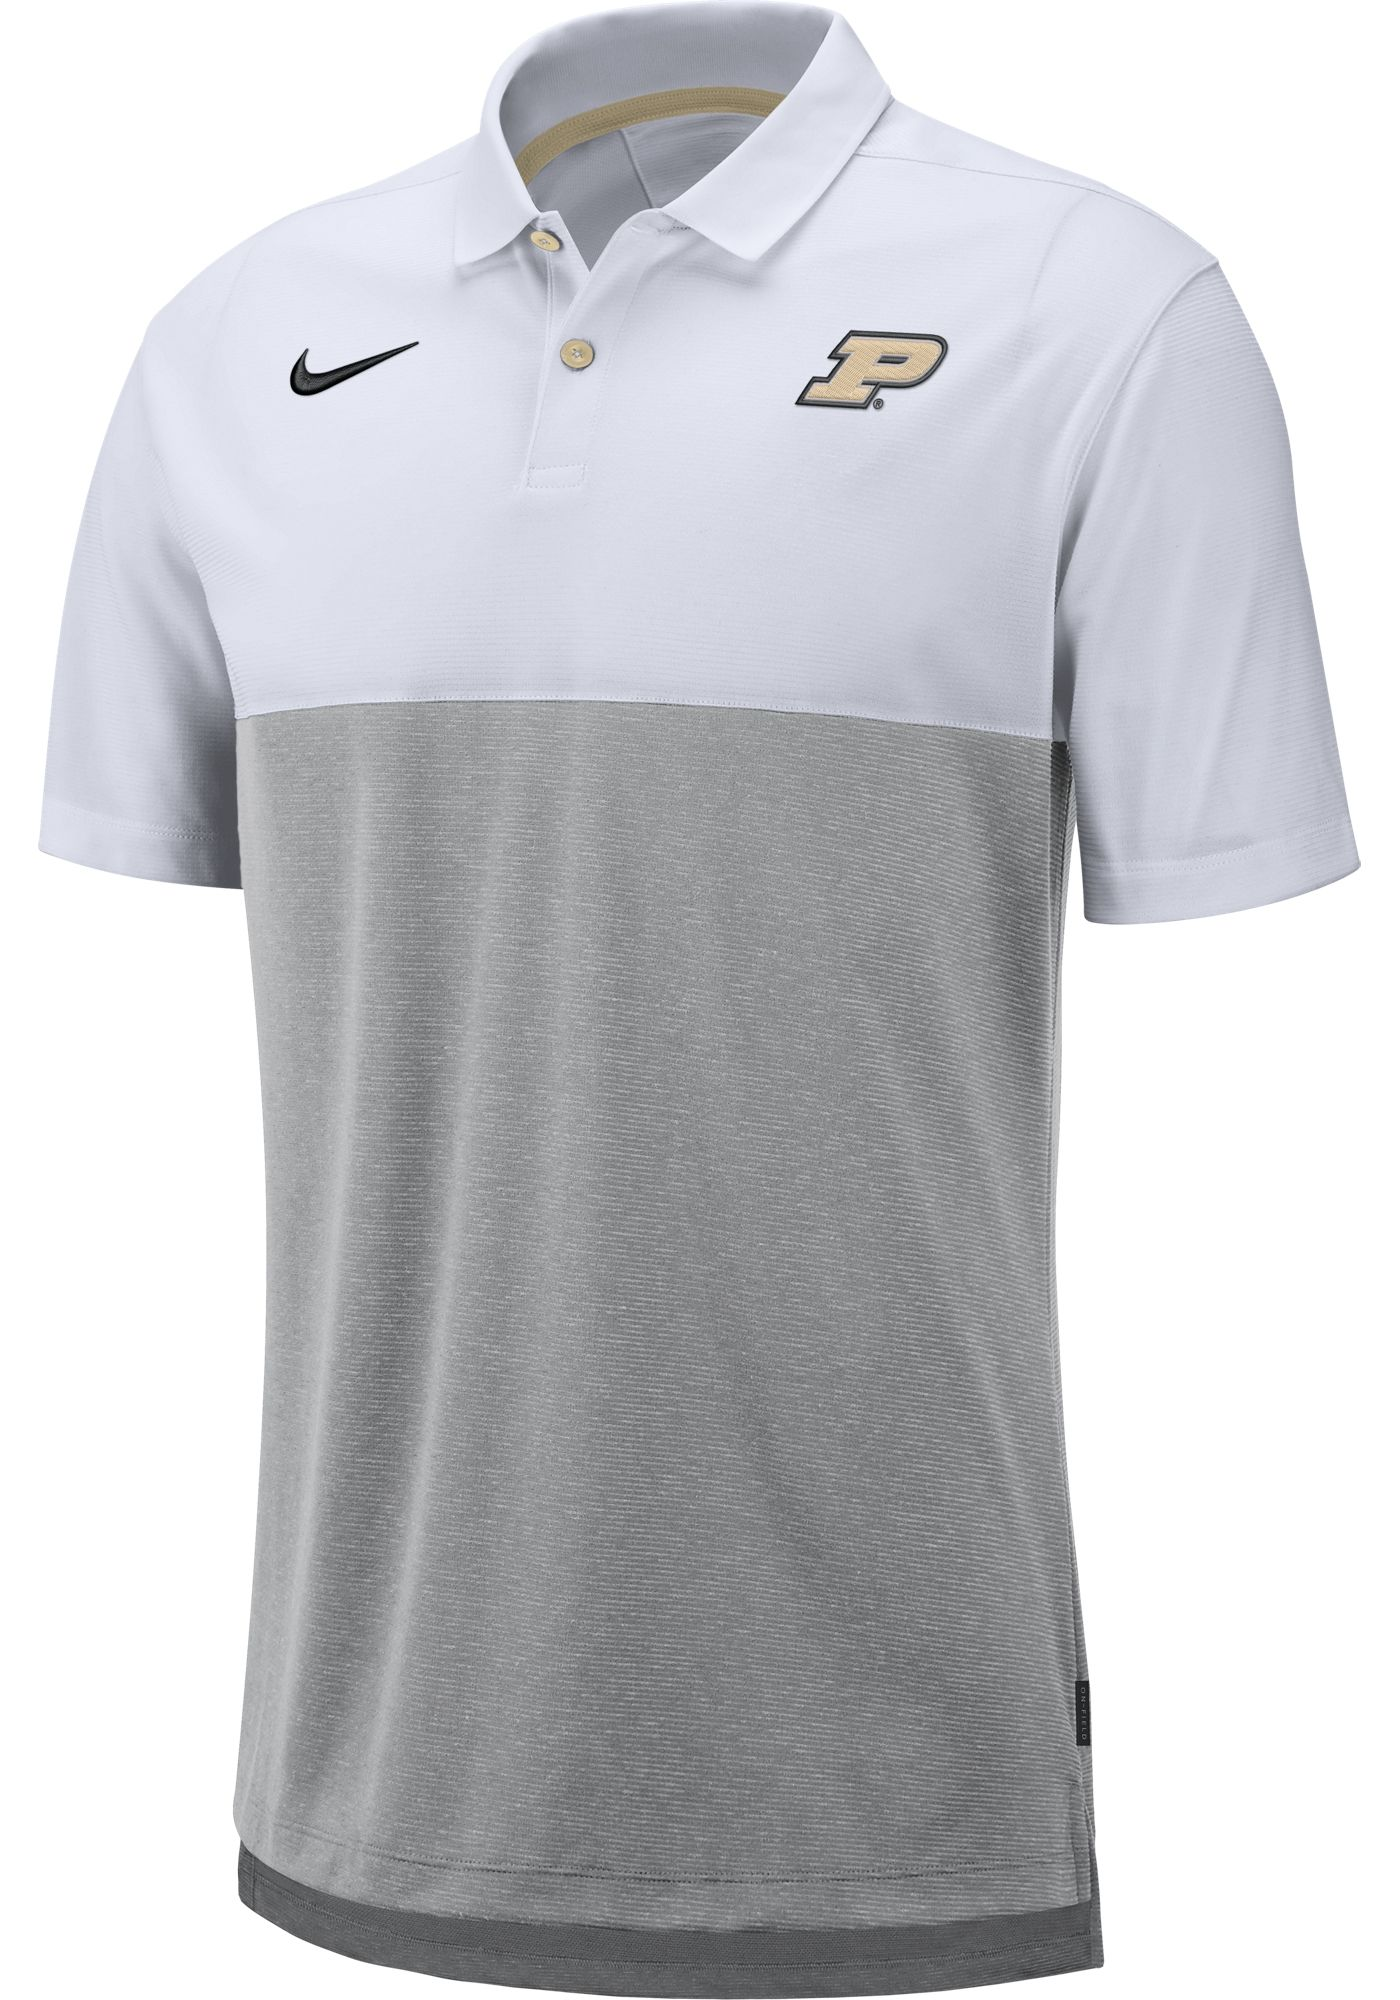 Nike Men's Purdue Boilermakers White/Grey Dri-FIT Breathe Football Sideline Polo